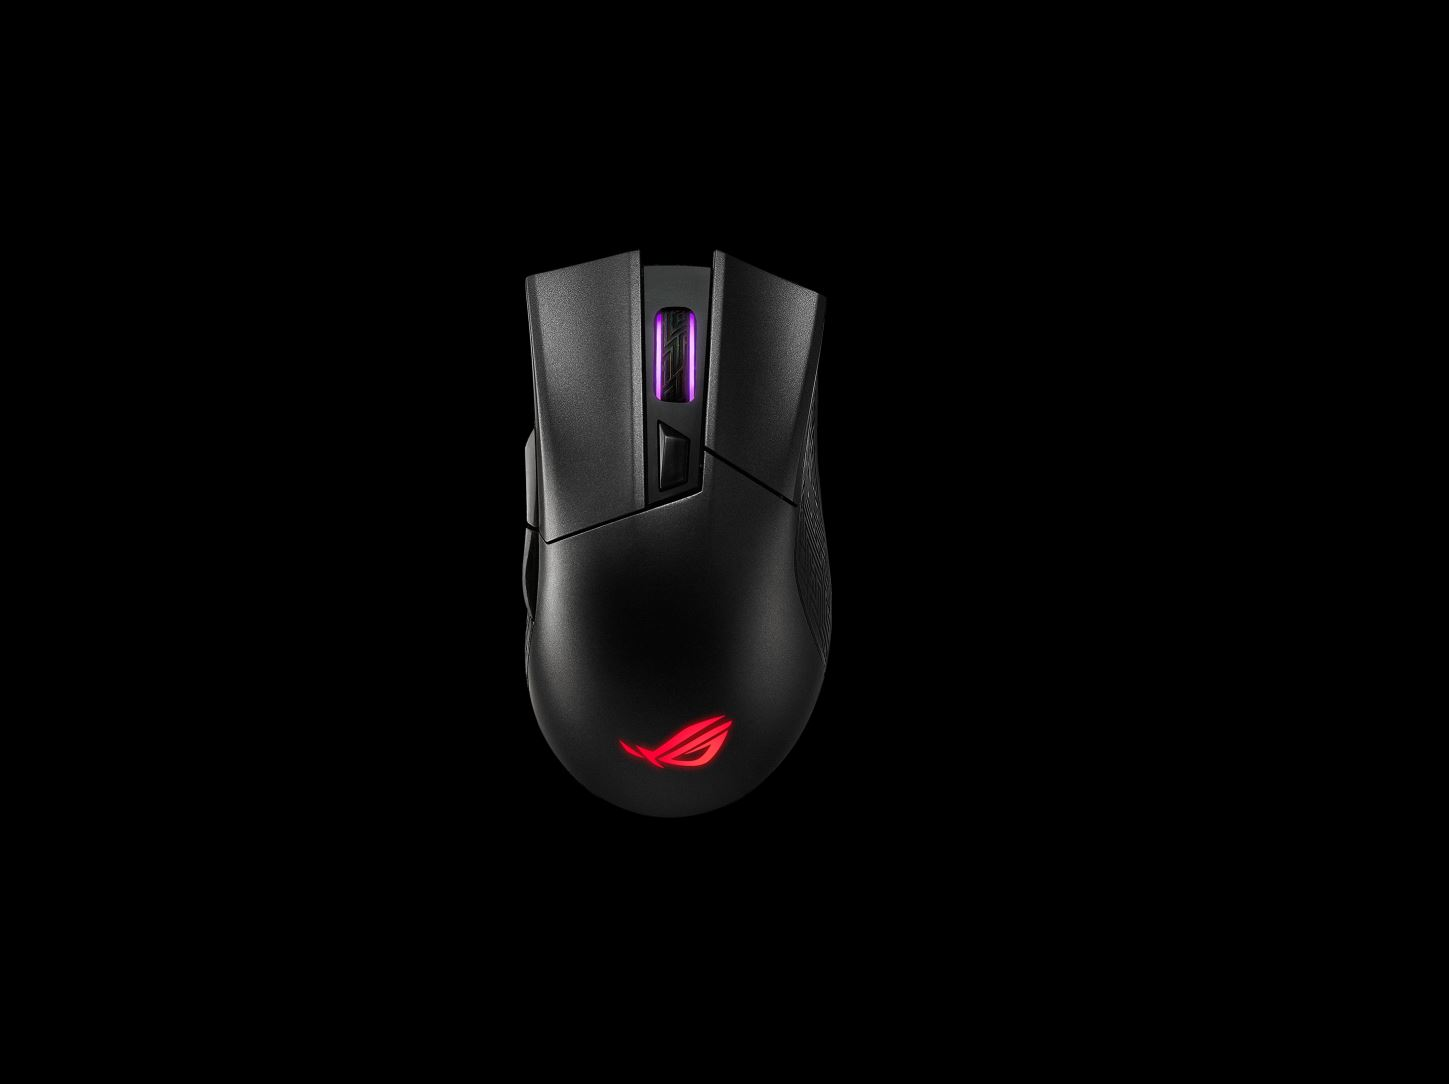 ASUS ROG Gladius II Wireless P702  Gaming Mouse Aura Sync RGB lighting